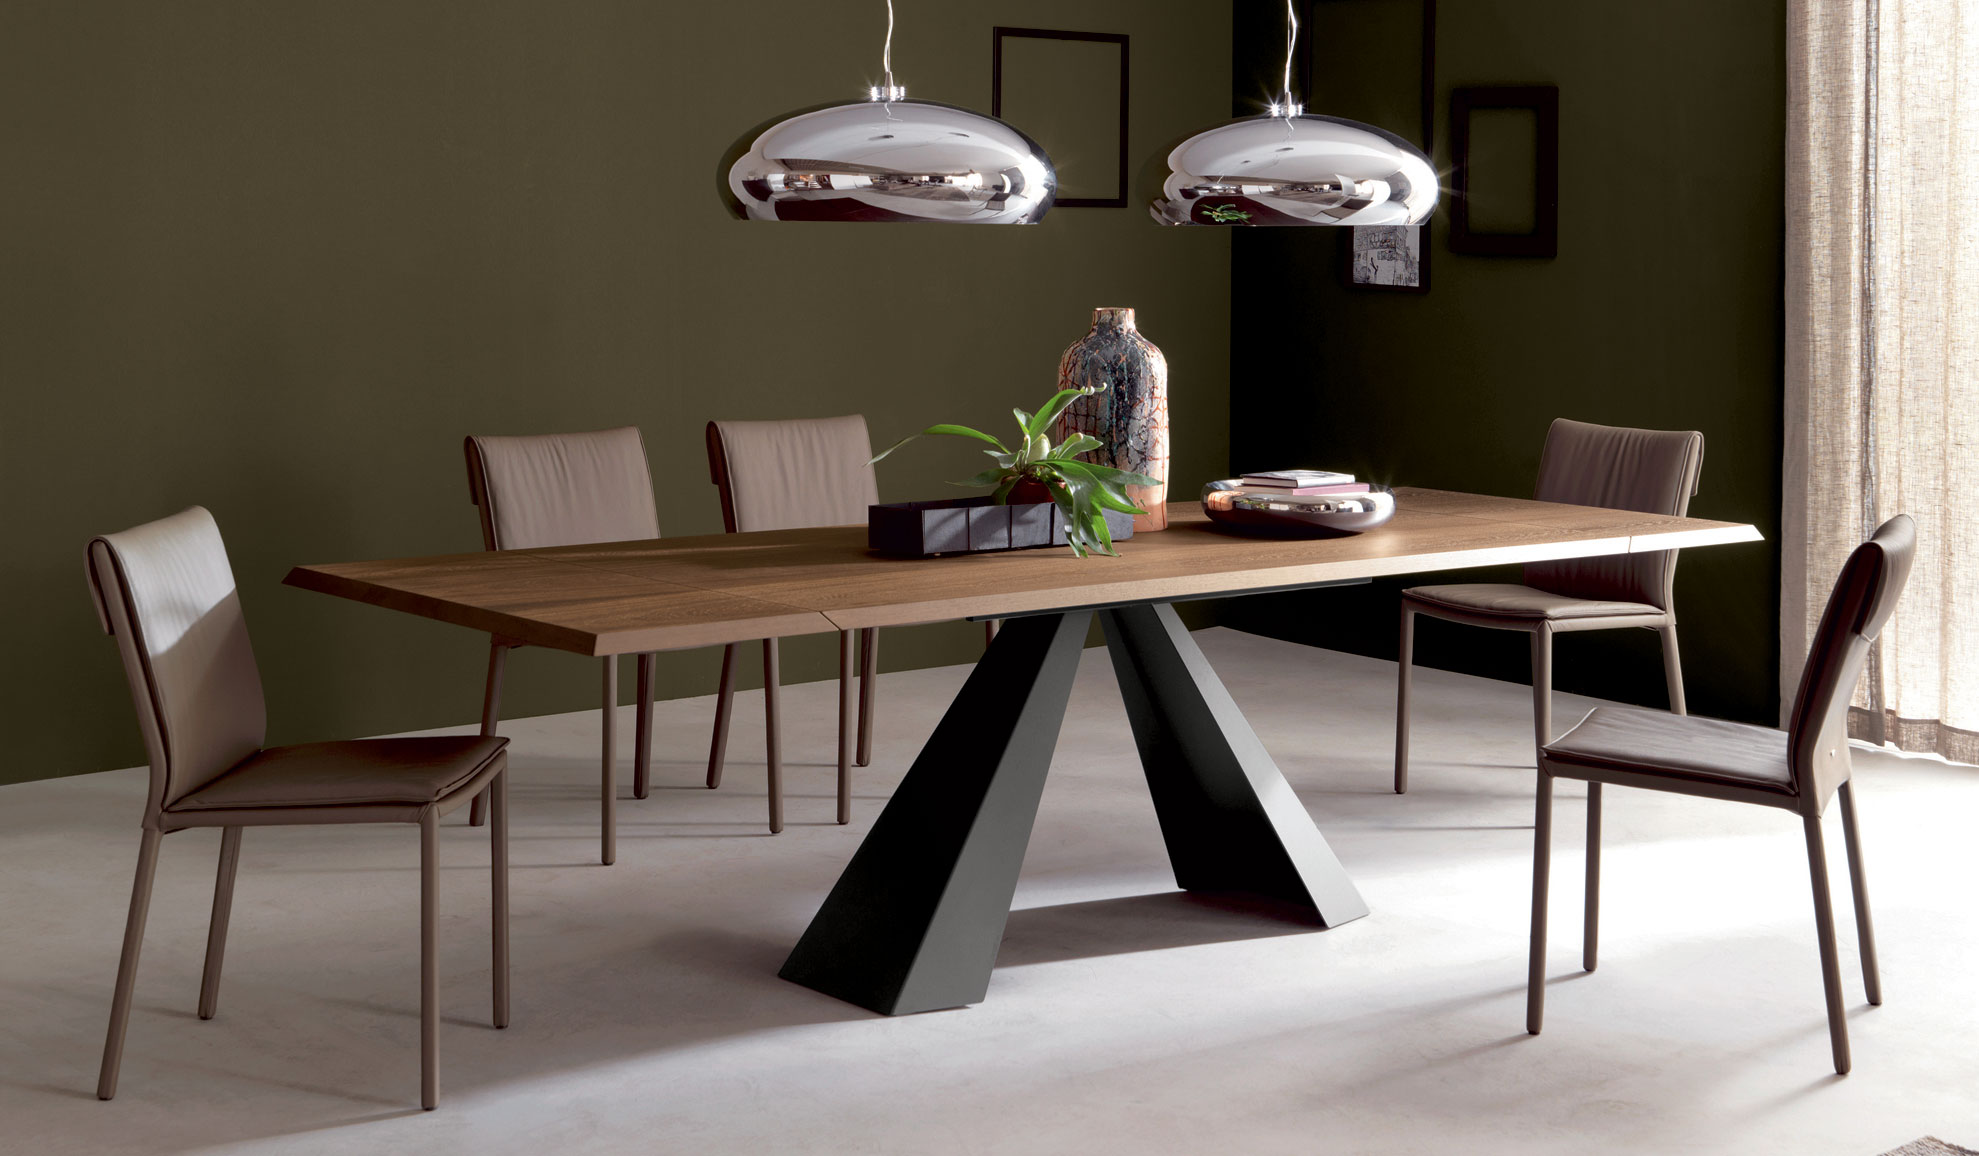 Mesa comedor extensible eliot cattelan en for Mesas de salon modernas extensibles